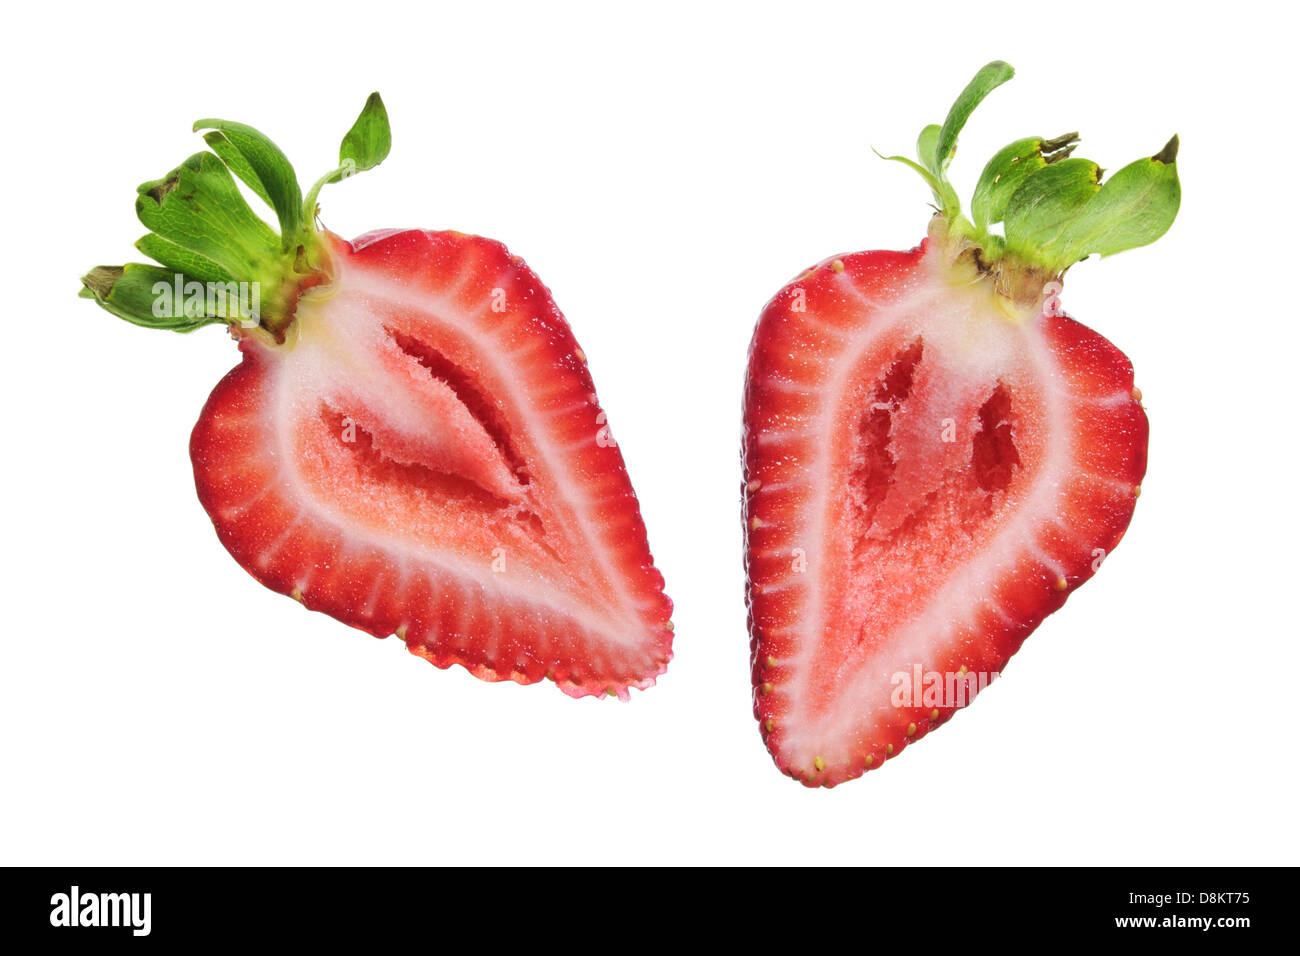 strawberry cut in half stock photos strawberry cut in half stock